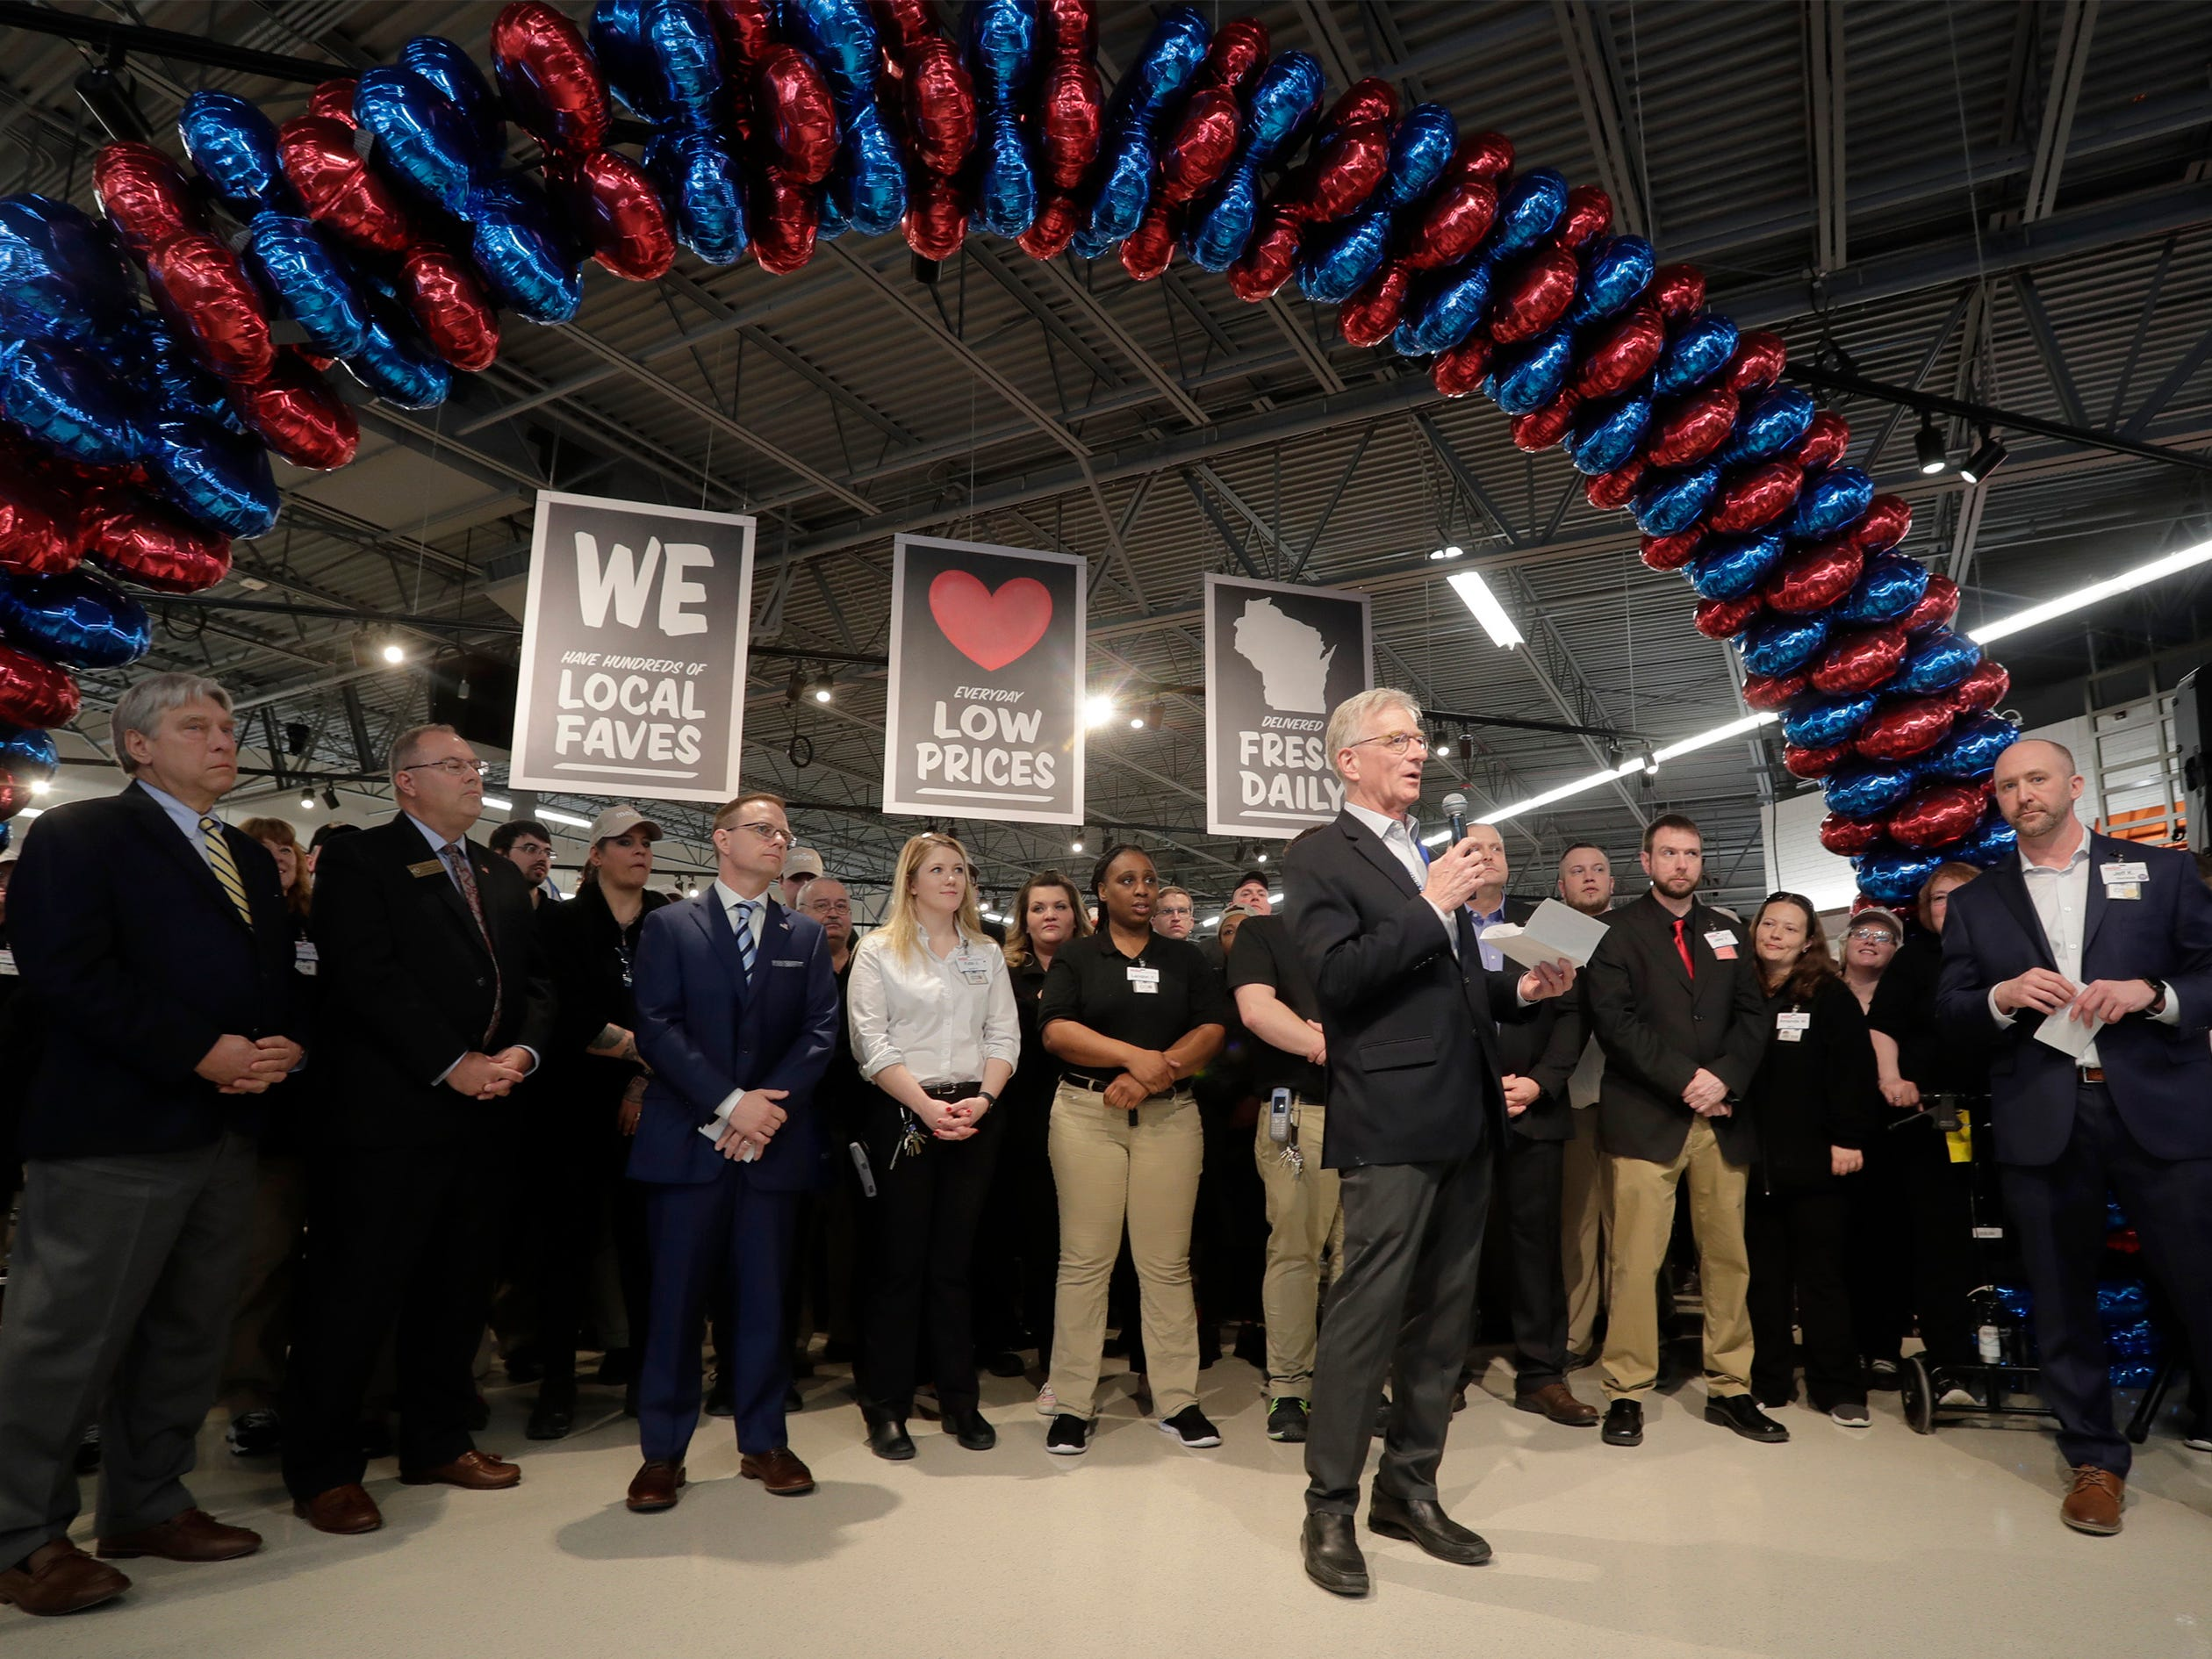 Executive Chairman Hank Meijer, center, speaks at the ribbon cutting at Meijer, Thursday April 25, 2019, in Sheboygan, Wis. The 155,000-square-foot supercenter has 300 employees on opening day.